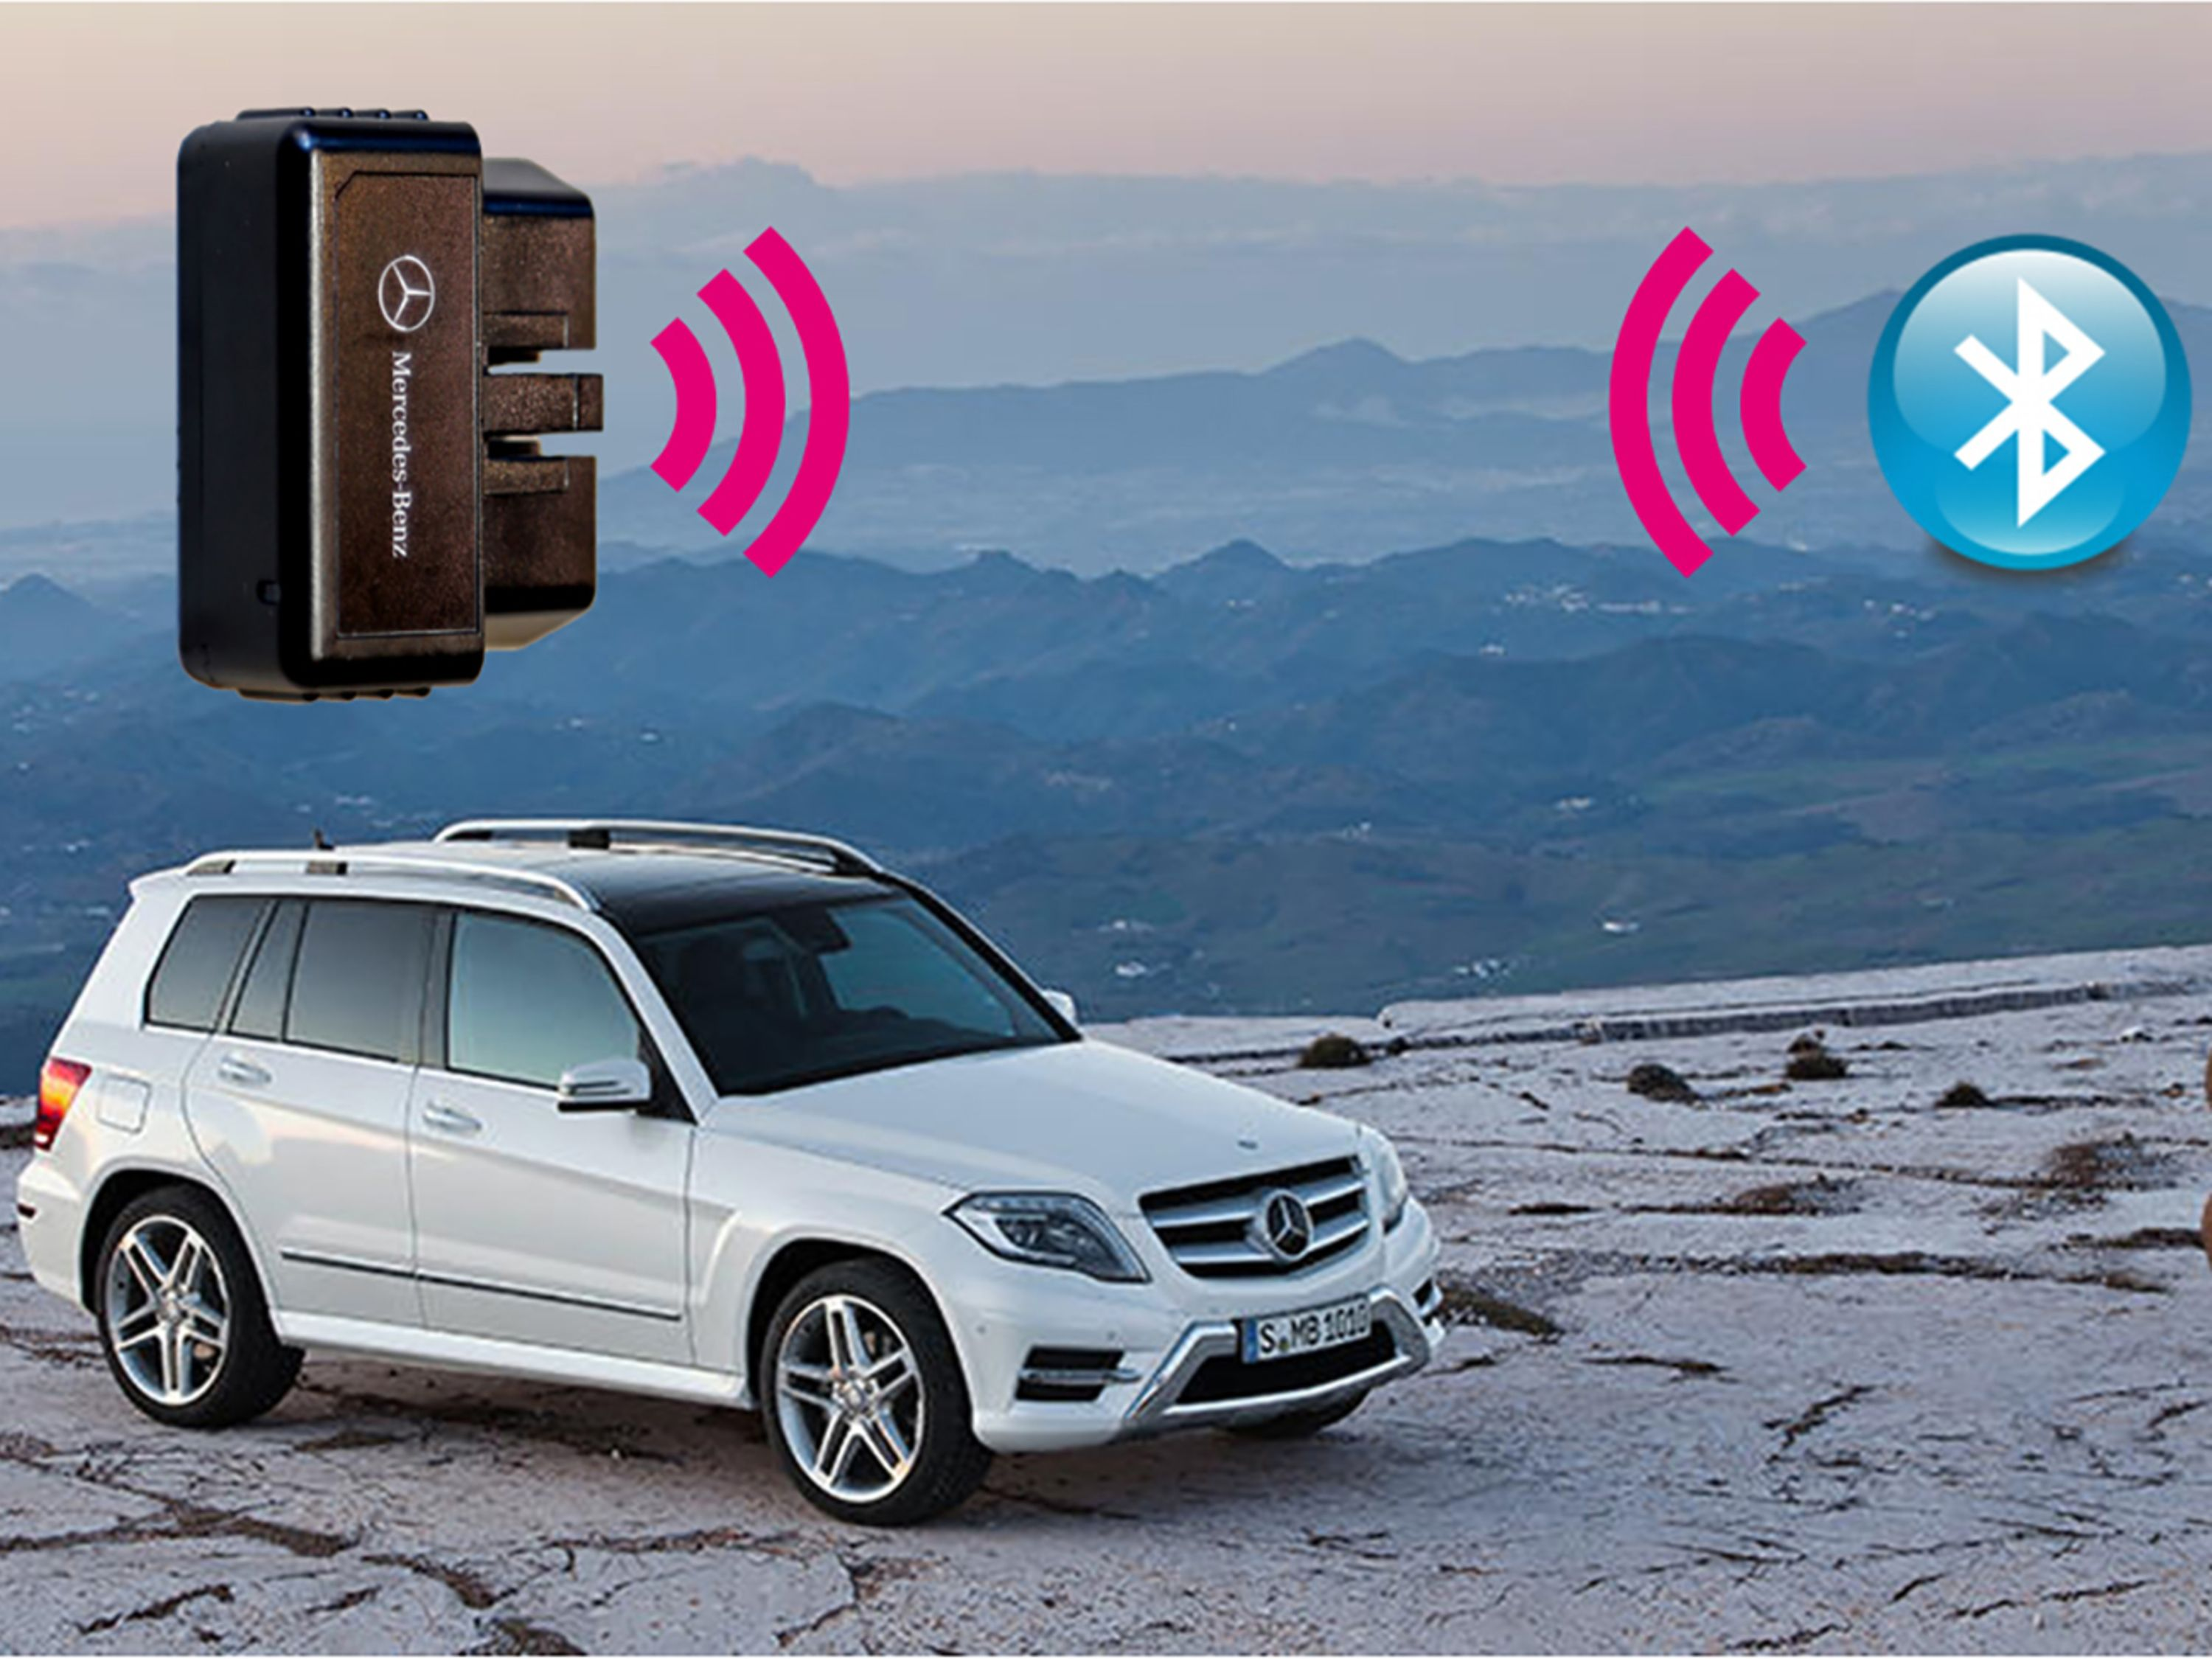 Mercedes, Vehicles Connected Globally